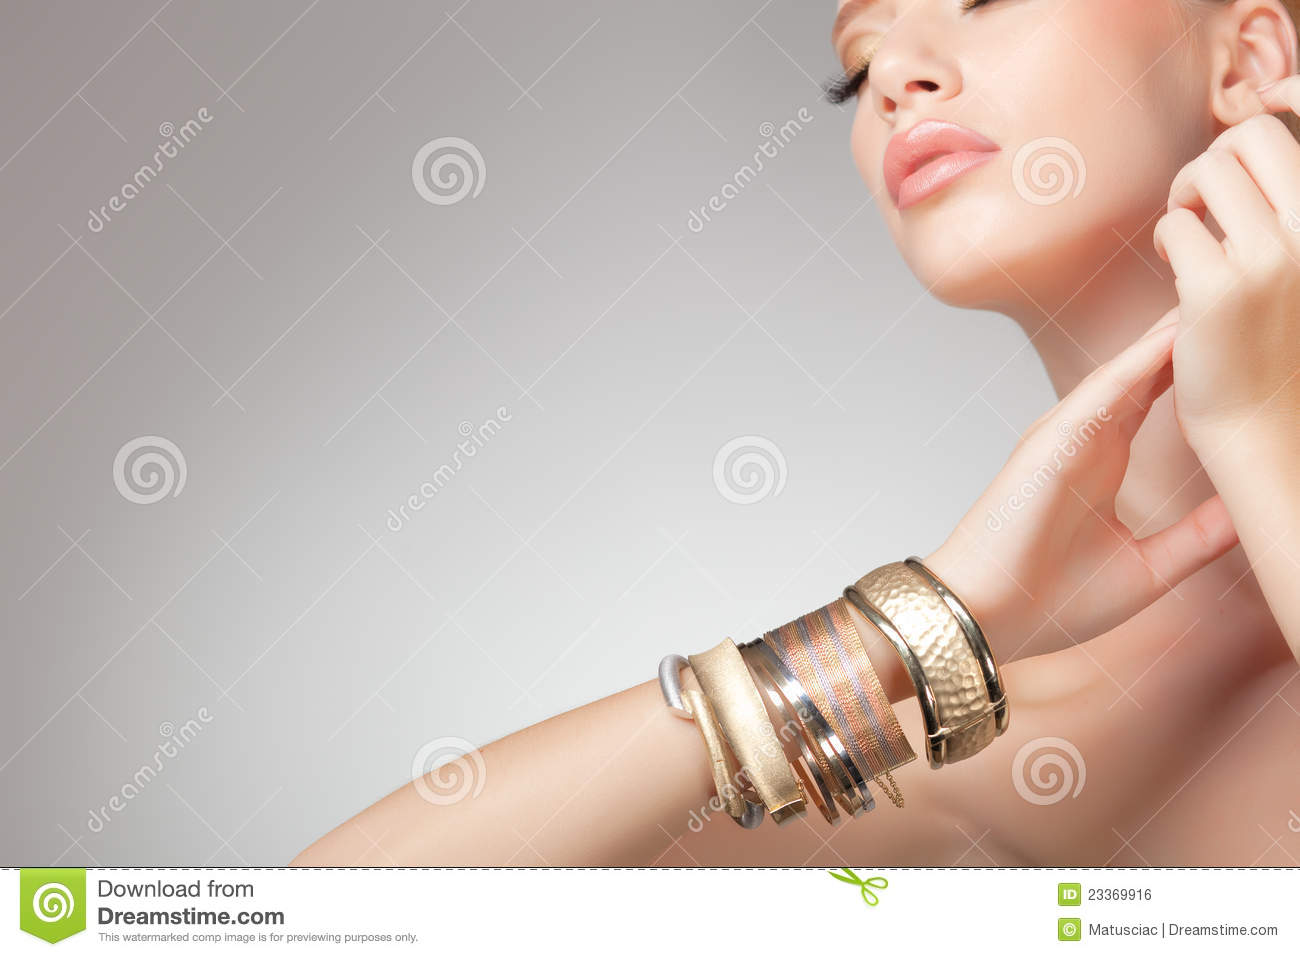 Beautiful Woman Wearing Jewelry Clean Image Royalty Free